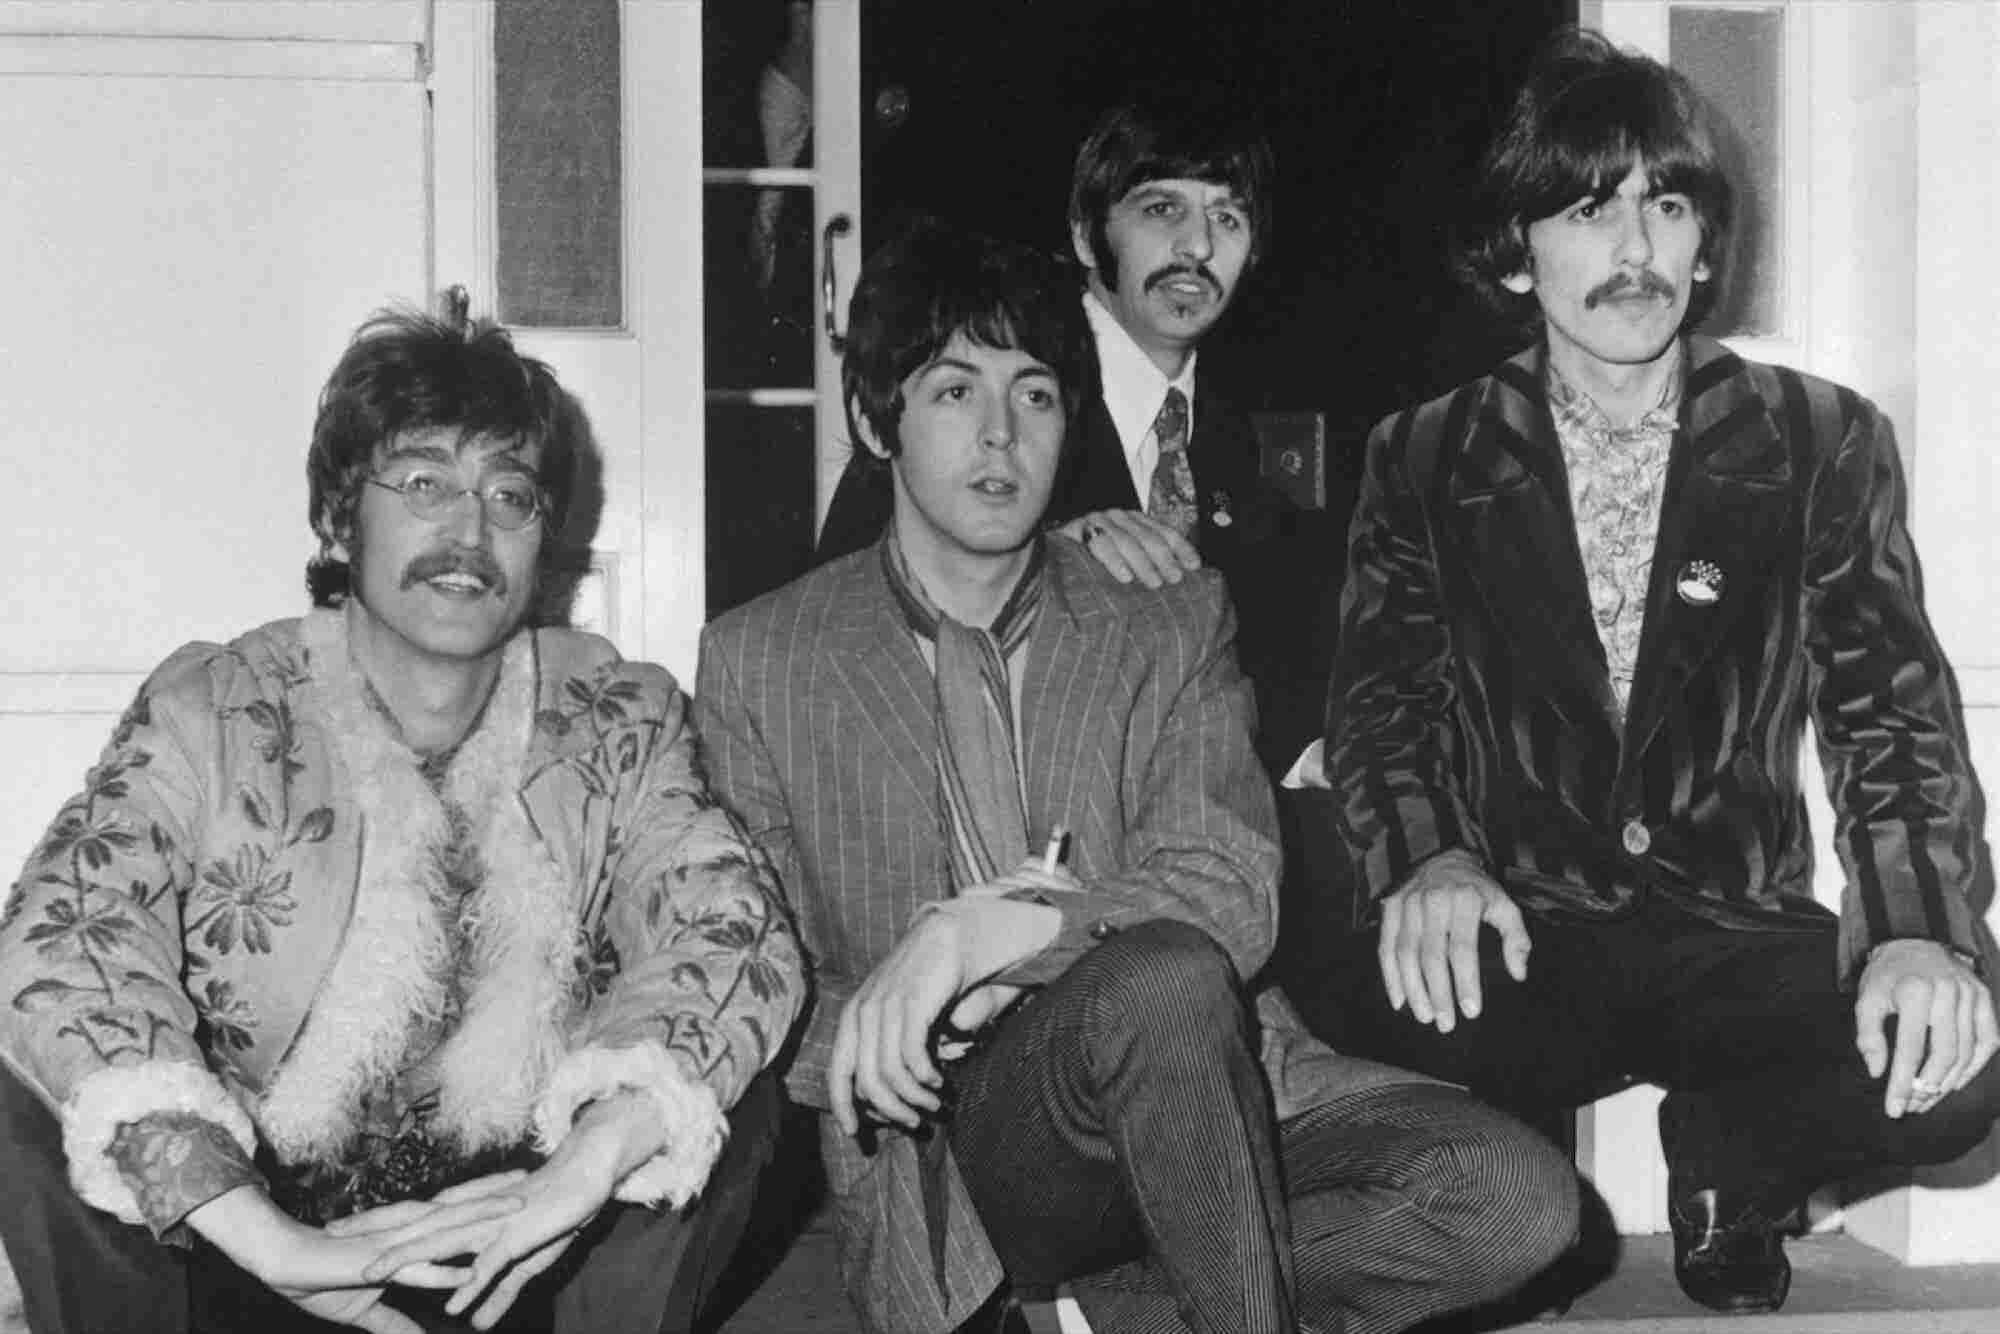 15 Fab Quotes About the Making of 'Sgt. Pepper's Lonely Hearts Club Band'